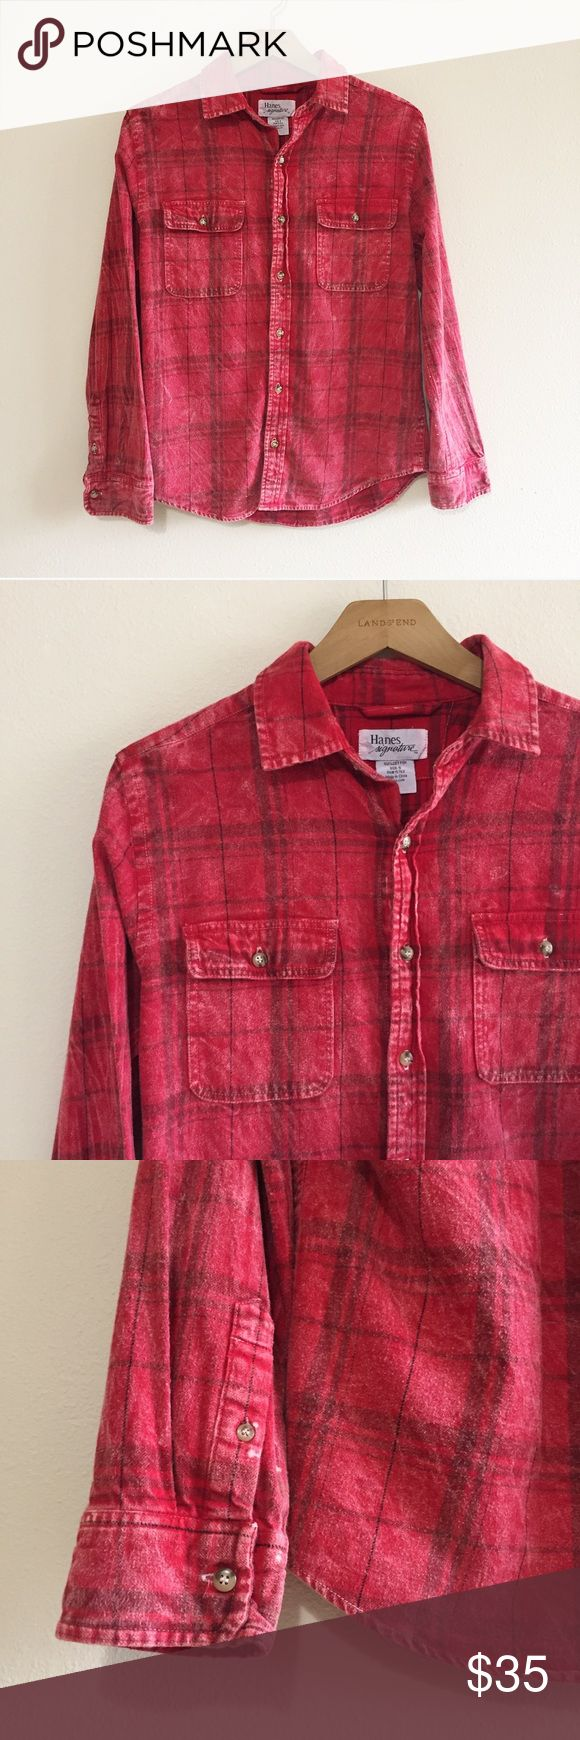 Urban Renewal Vintage Plaid Flannel Shirt 100% authentic vintage plaid flannel shirt by Hanes. Lived in, grunge style. Pair this with a band tee or cr...